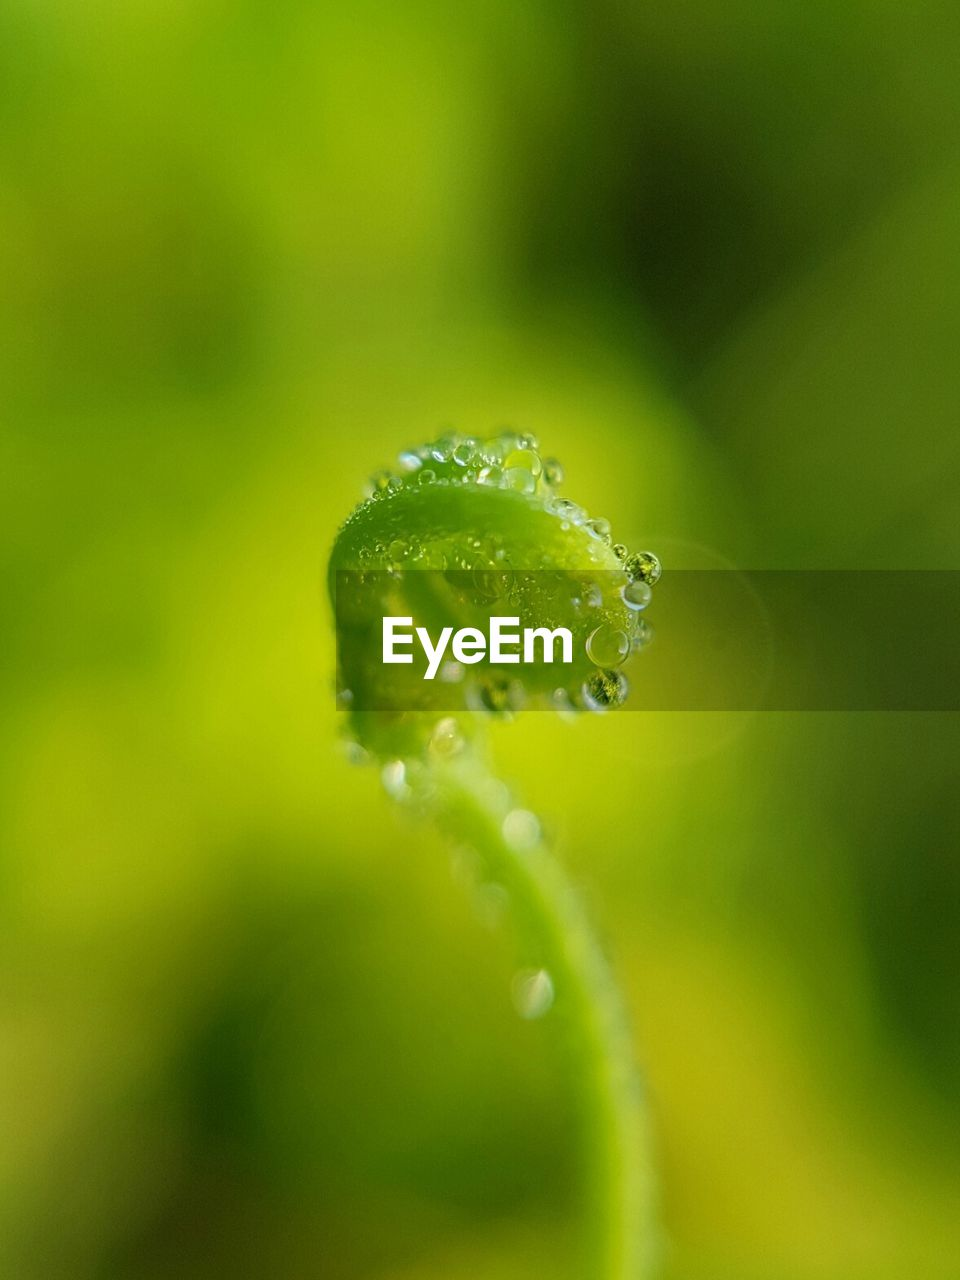 plant, growth, green color, close-up, beauty in nature, vulnerability, fragility, drop, freshness, selective focus, no people, water, nature, day, beginnings, wet, focus on foreground, flower, outdoors, curled up, dew, purity, raindrop